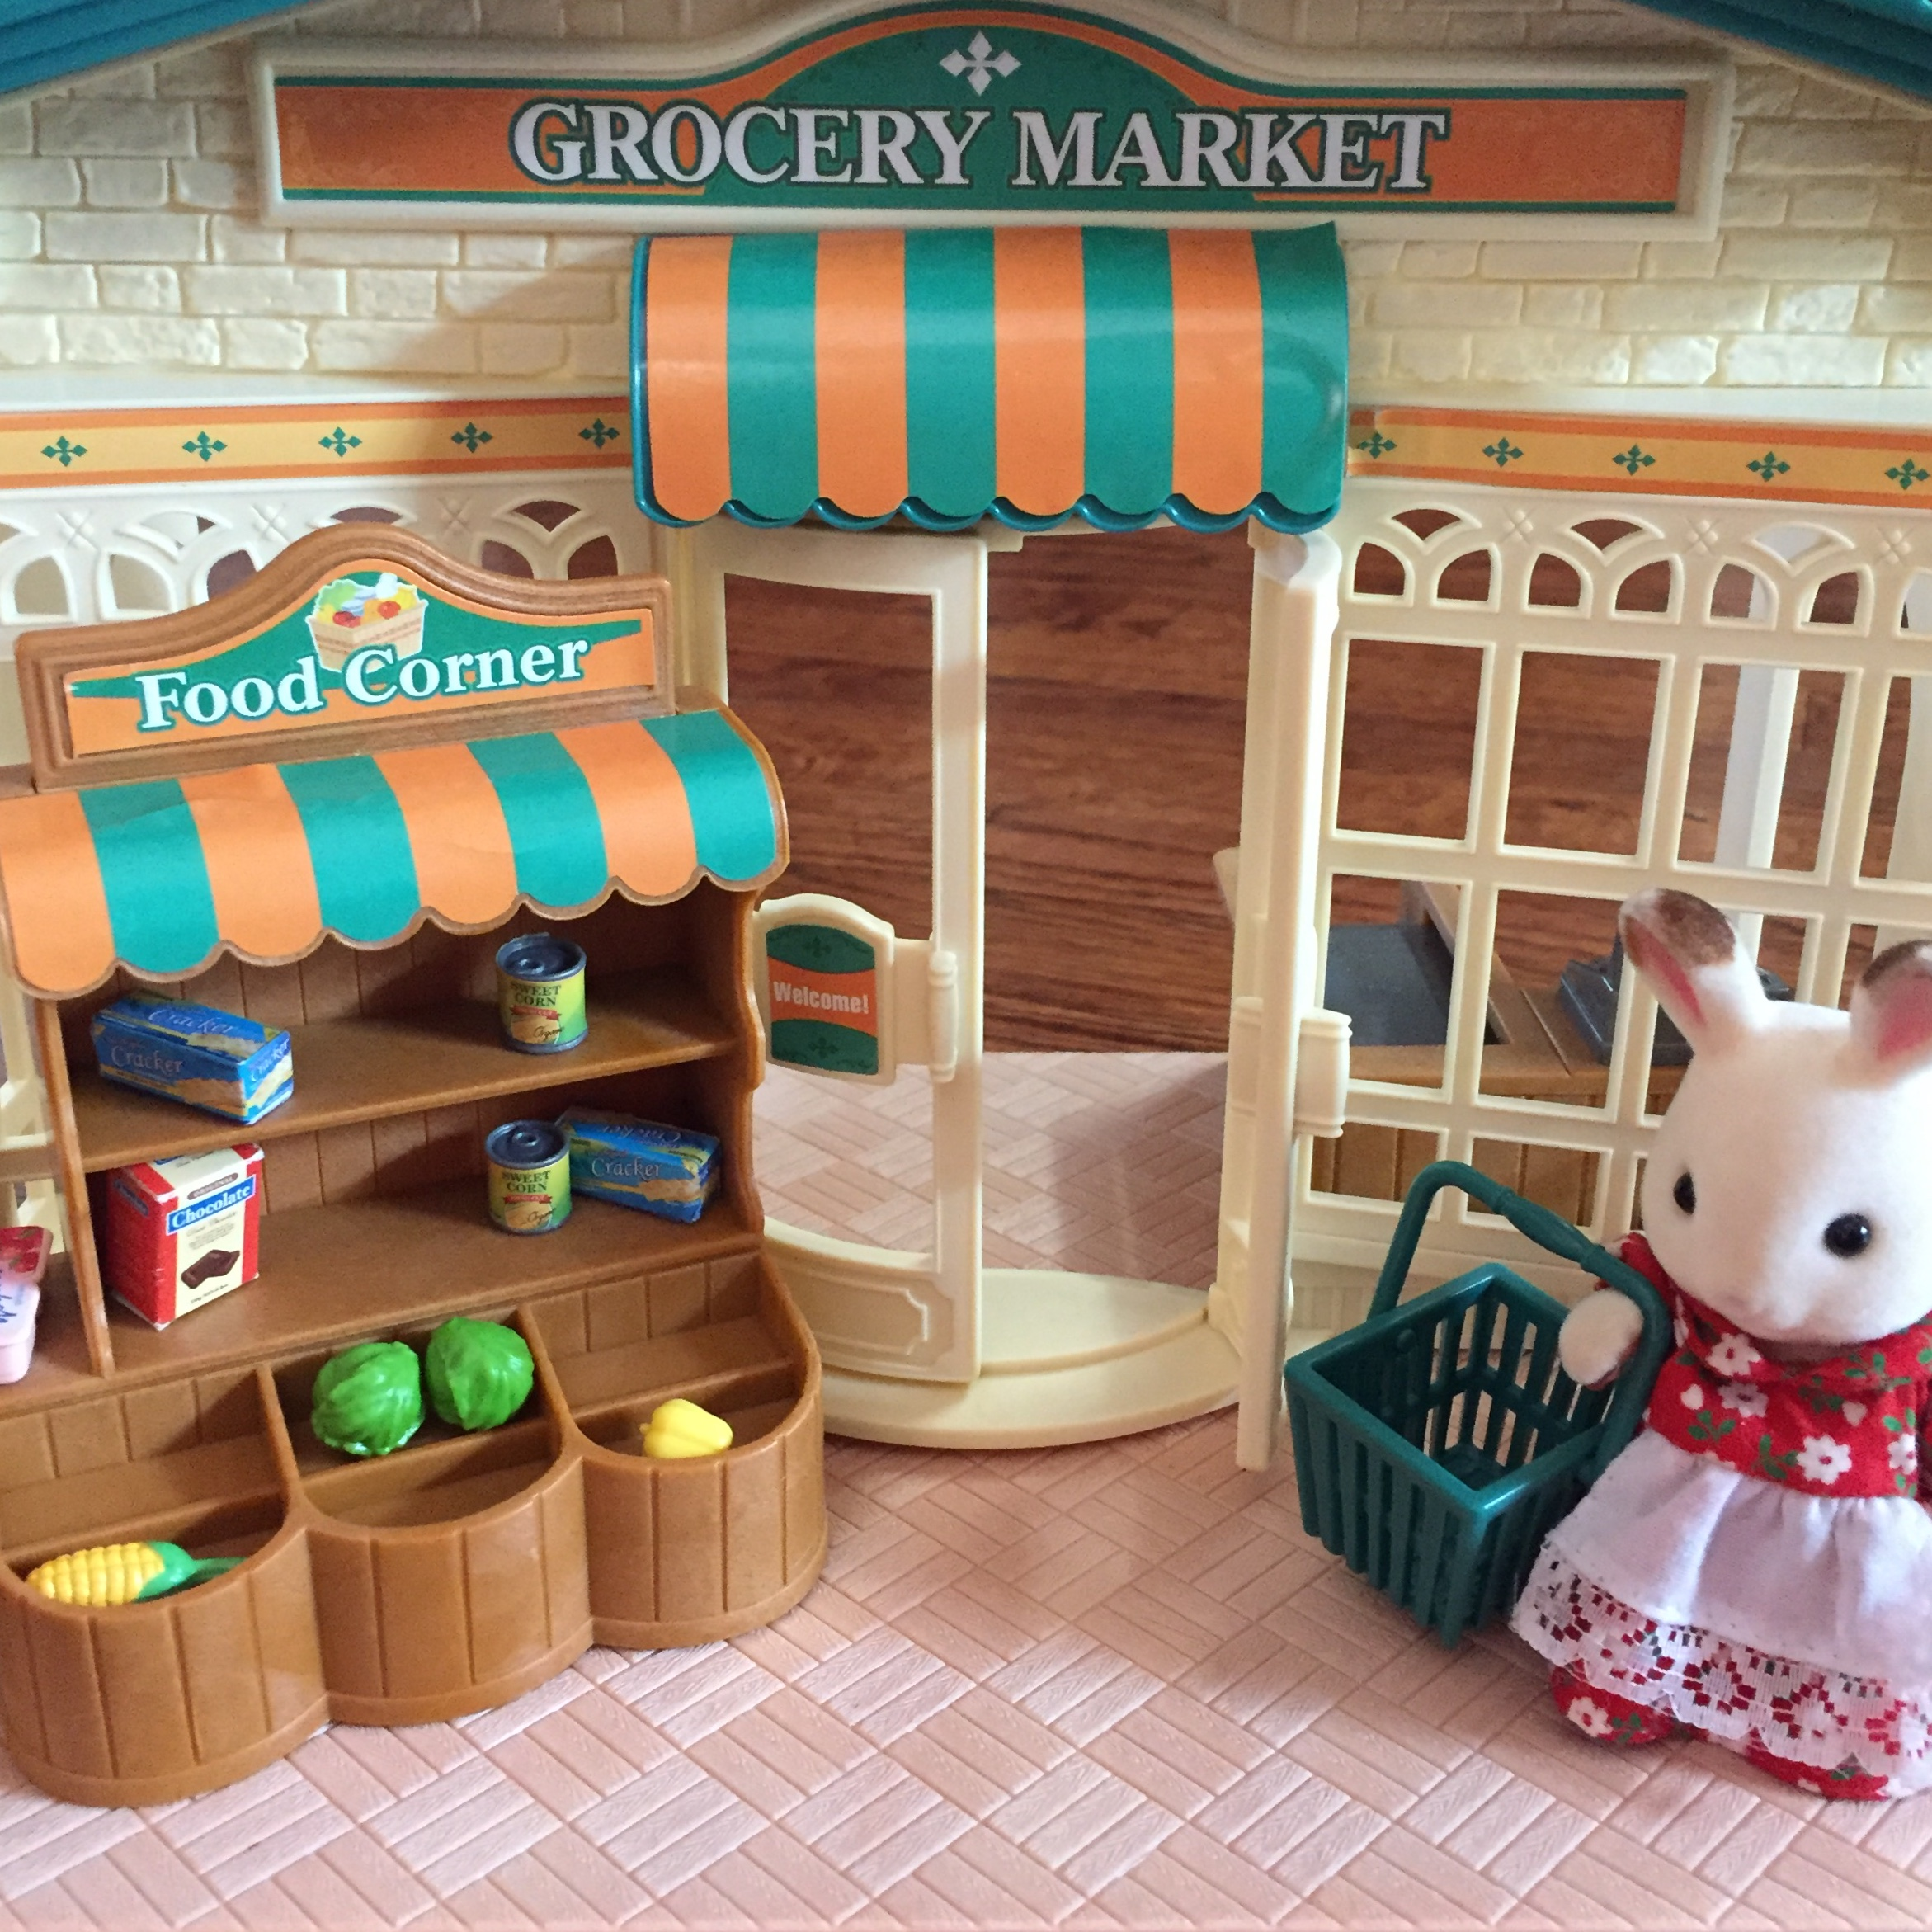 Calico Critter Grocery Market with bunny shopping at store